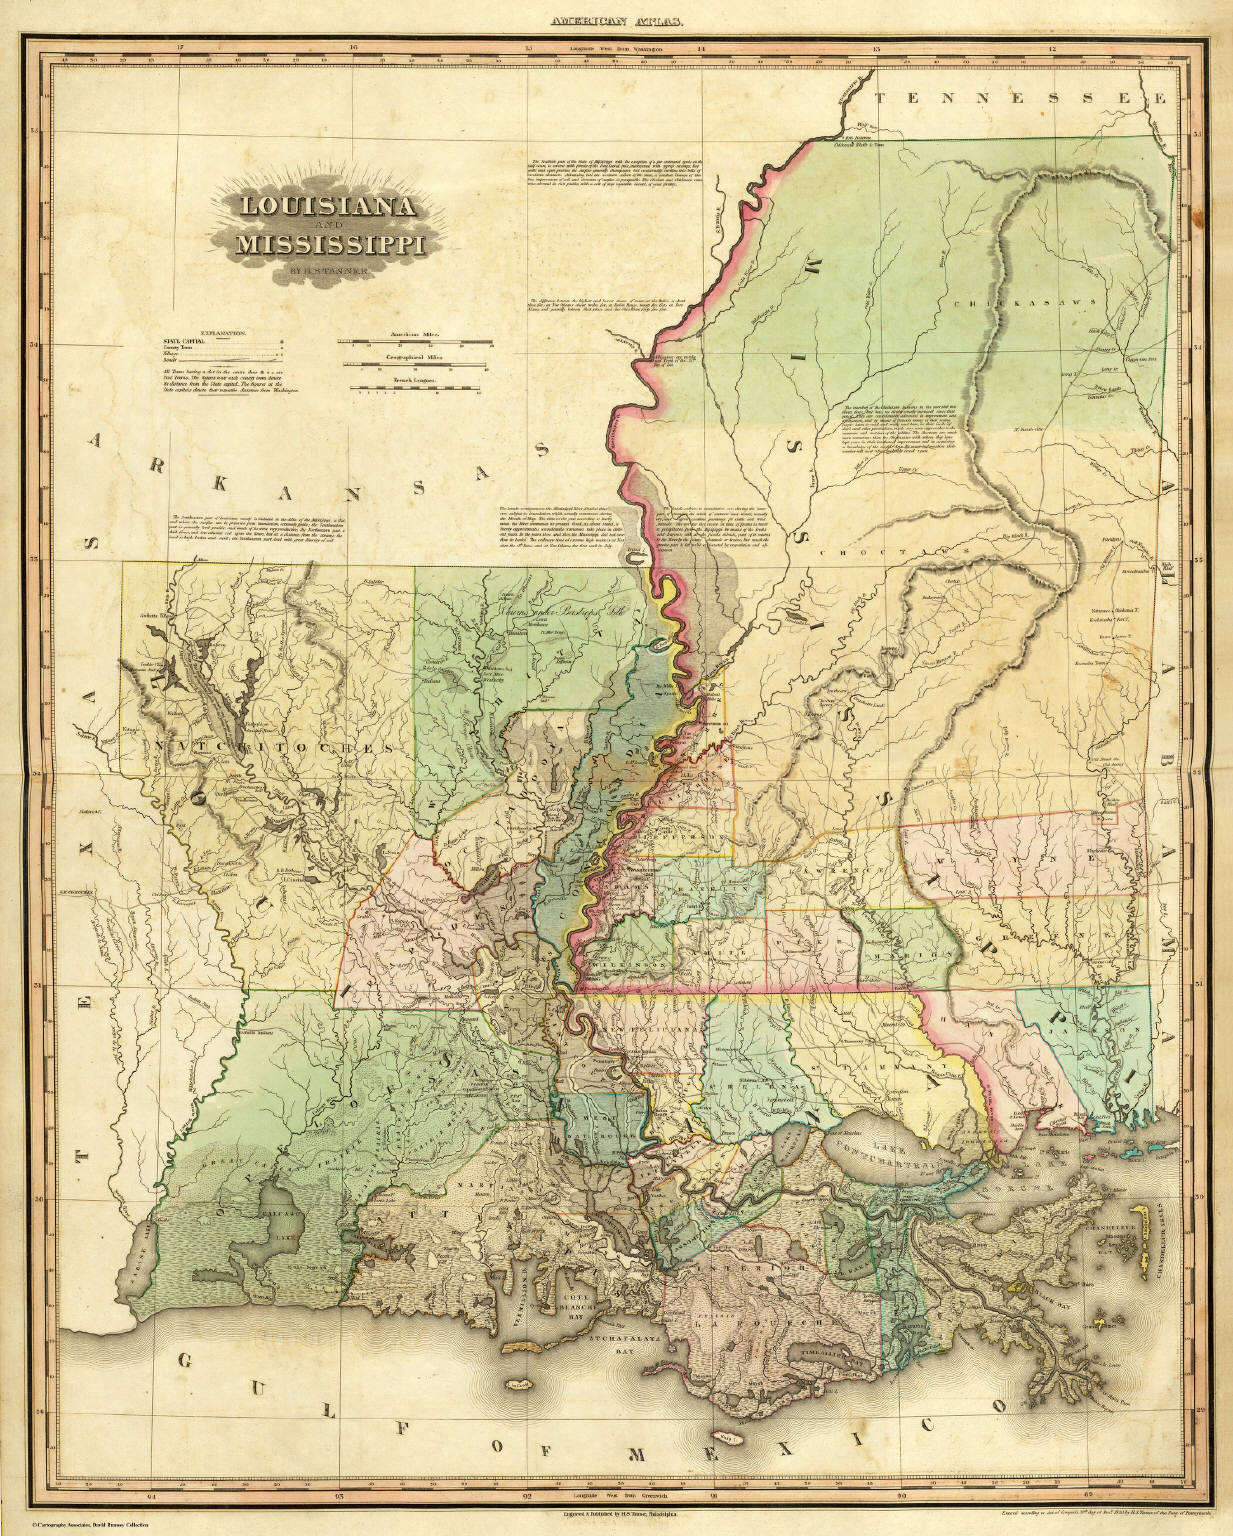 louisiana and mississippi david rumsey historical map collection